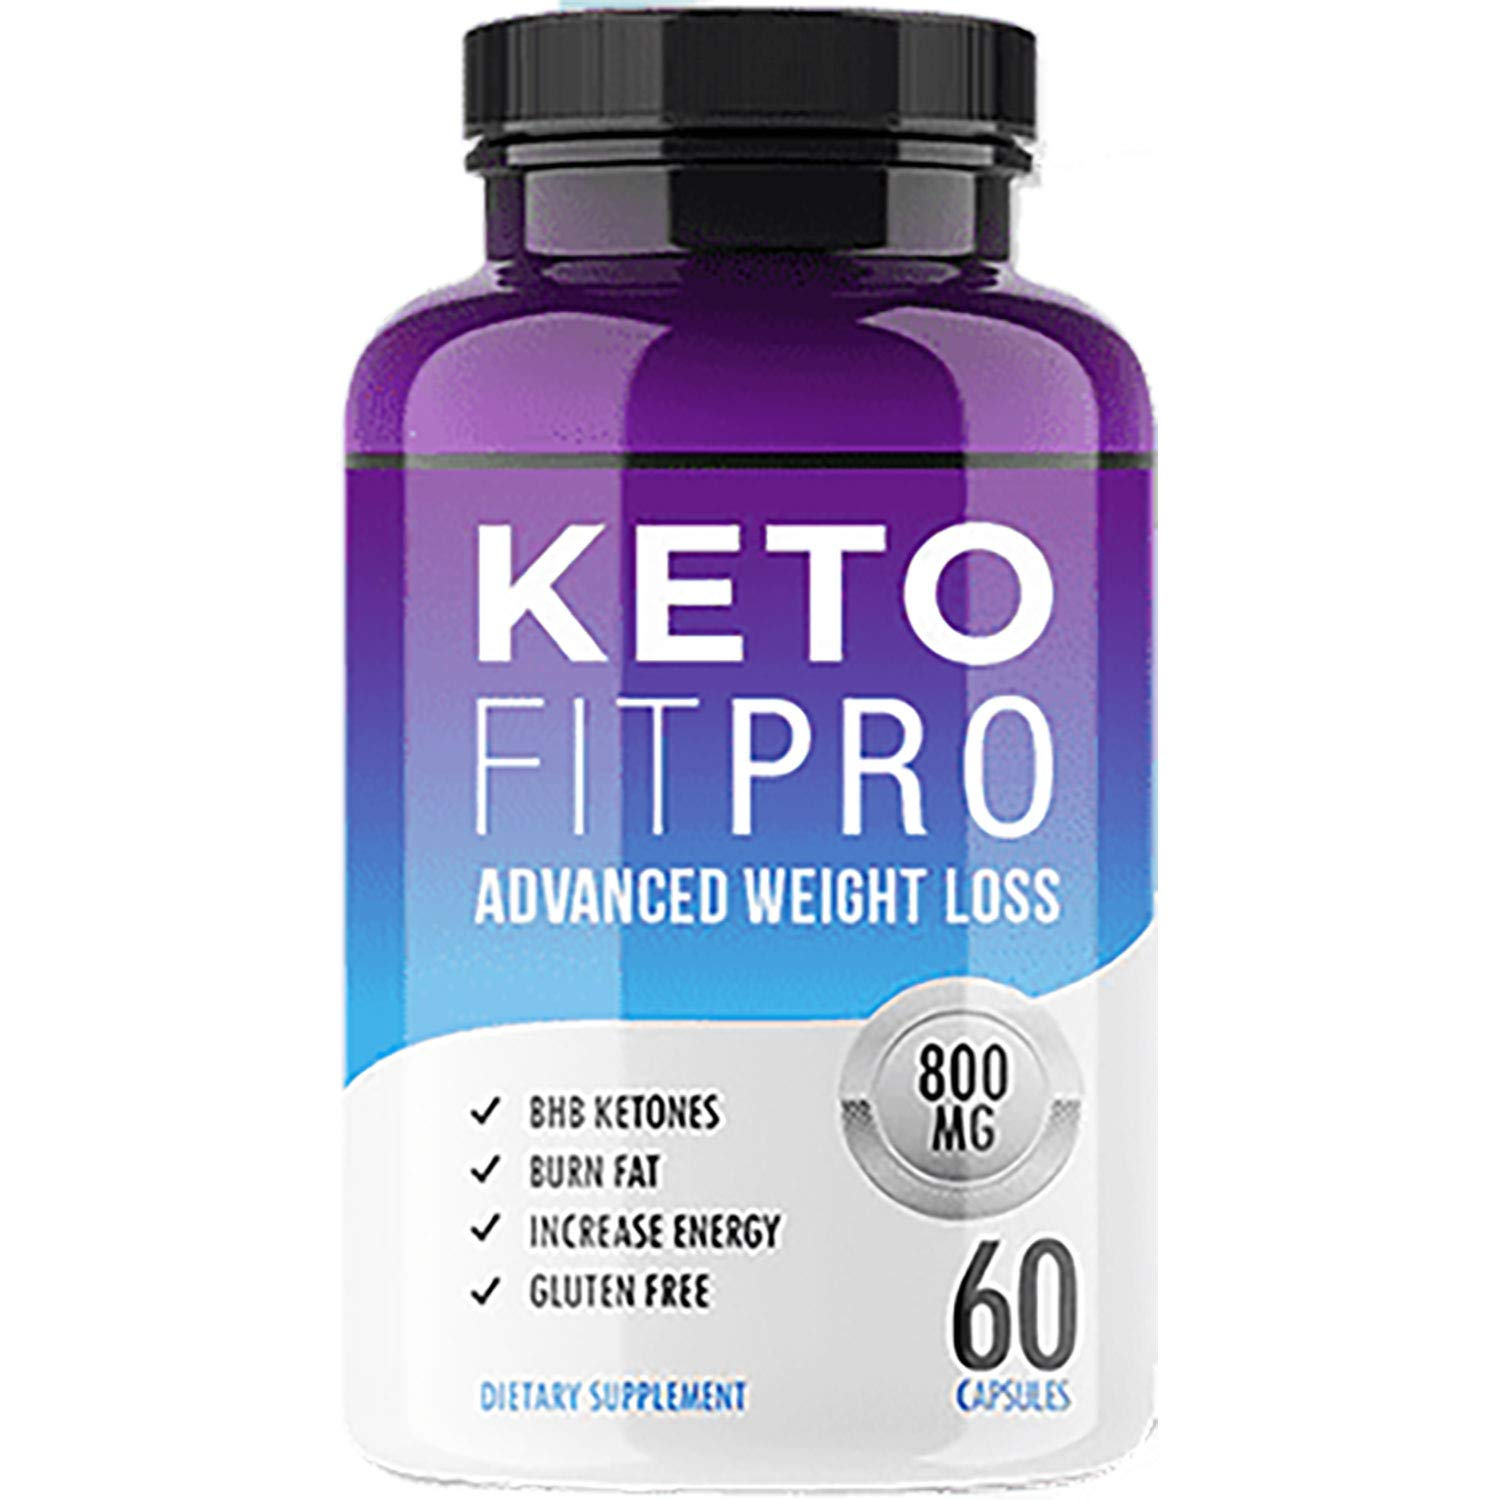 Keto Fit Pro - Advanced Ketosis Weight Loss - Premium Keto Diet Pills - Burn Fat for Energy not Carbs